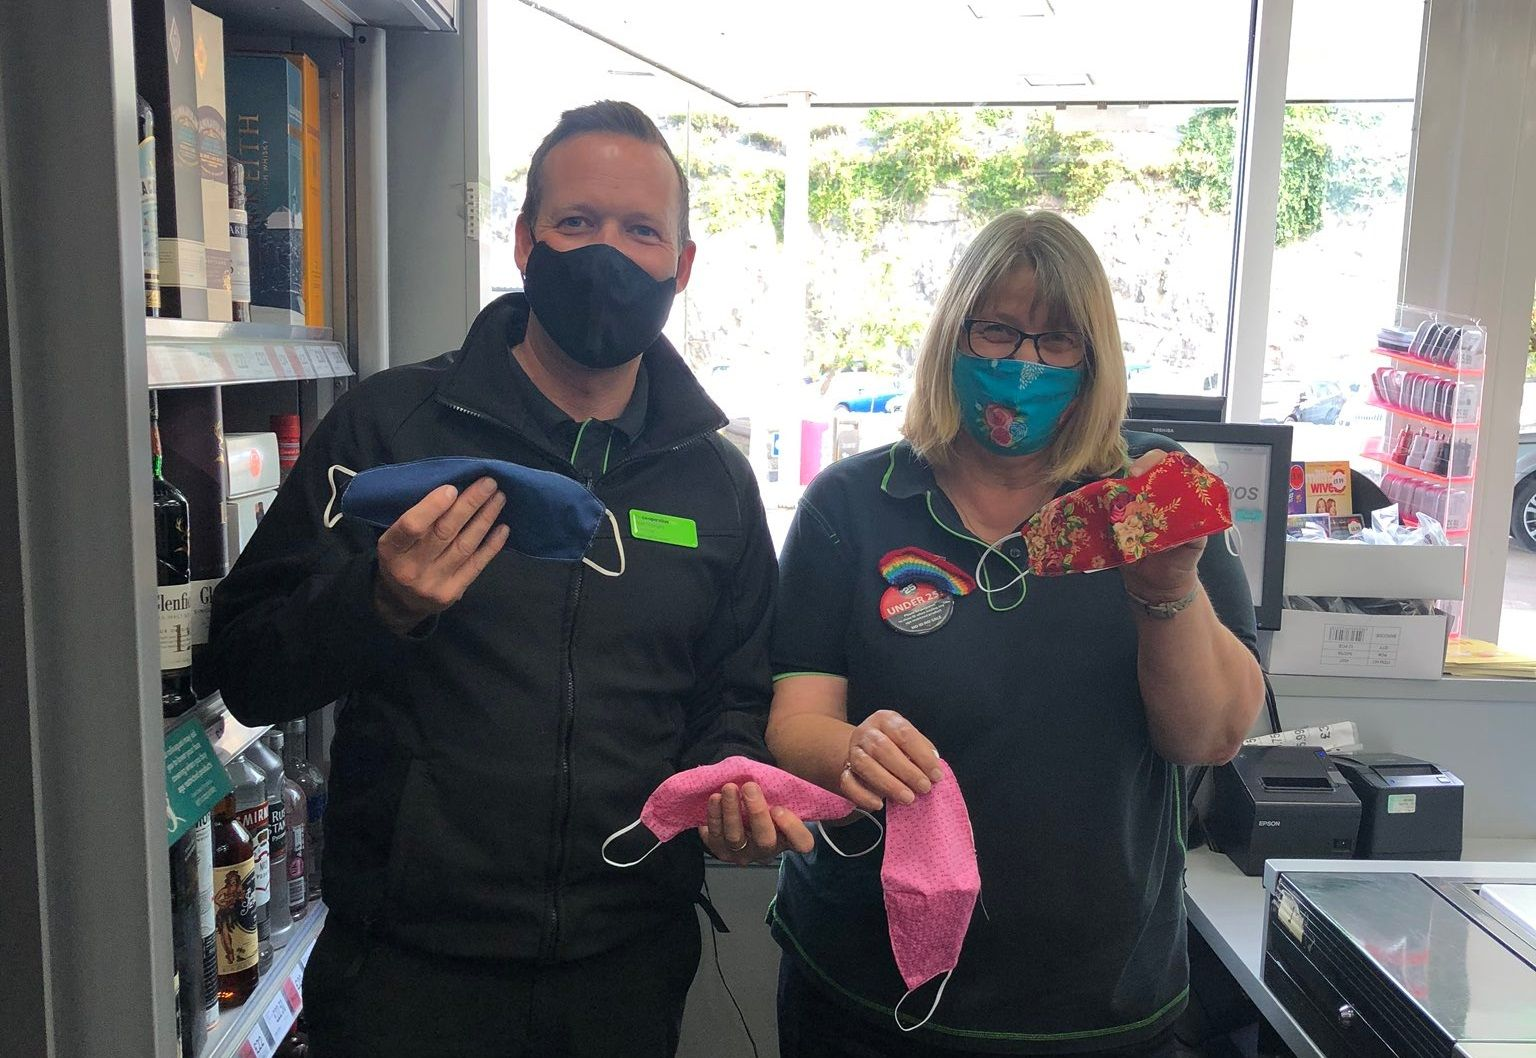 Crafty colleague turns her skills to making face coverings for charity